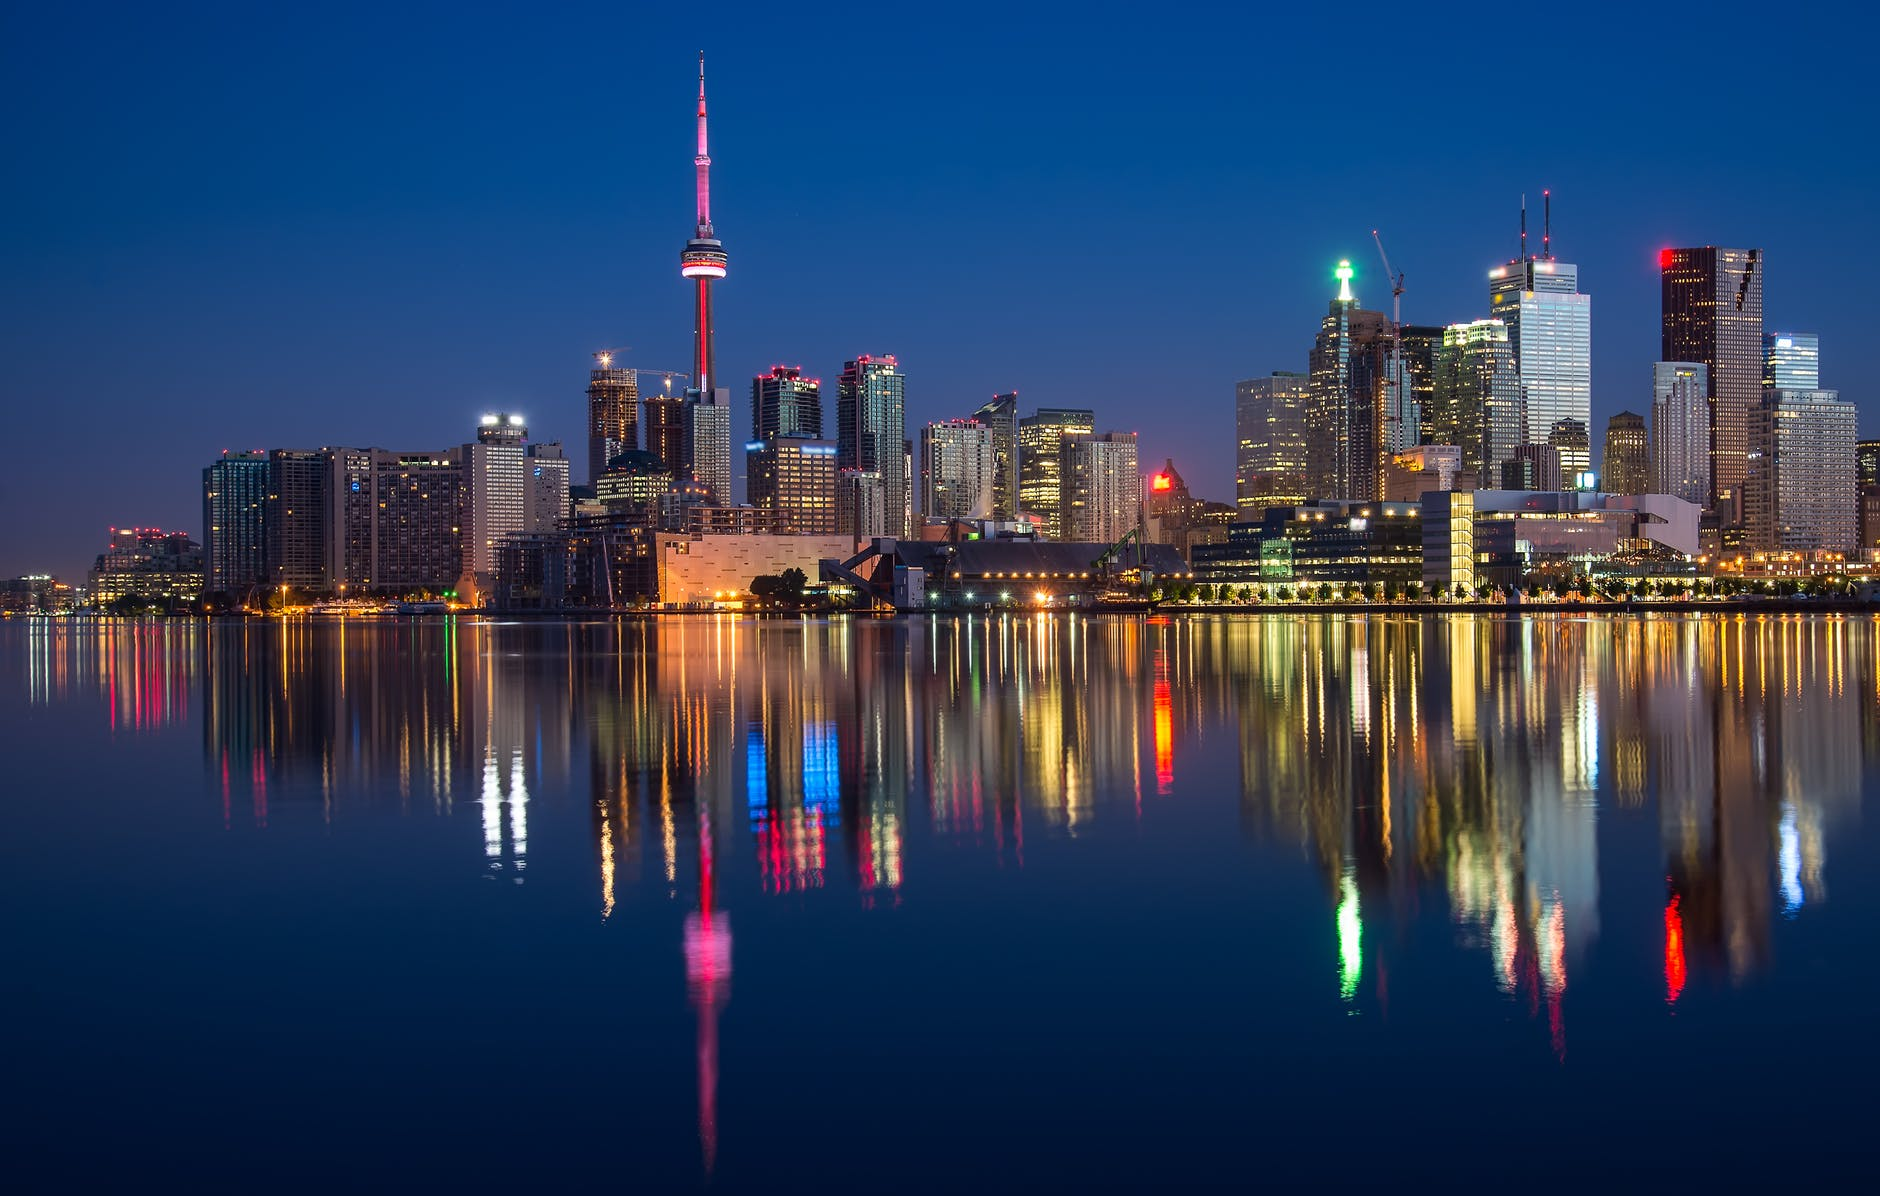 A photo of Toronto's skyline at night, symbolizing the home of Decentral Inc., Canada's leading blockchain startup.